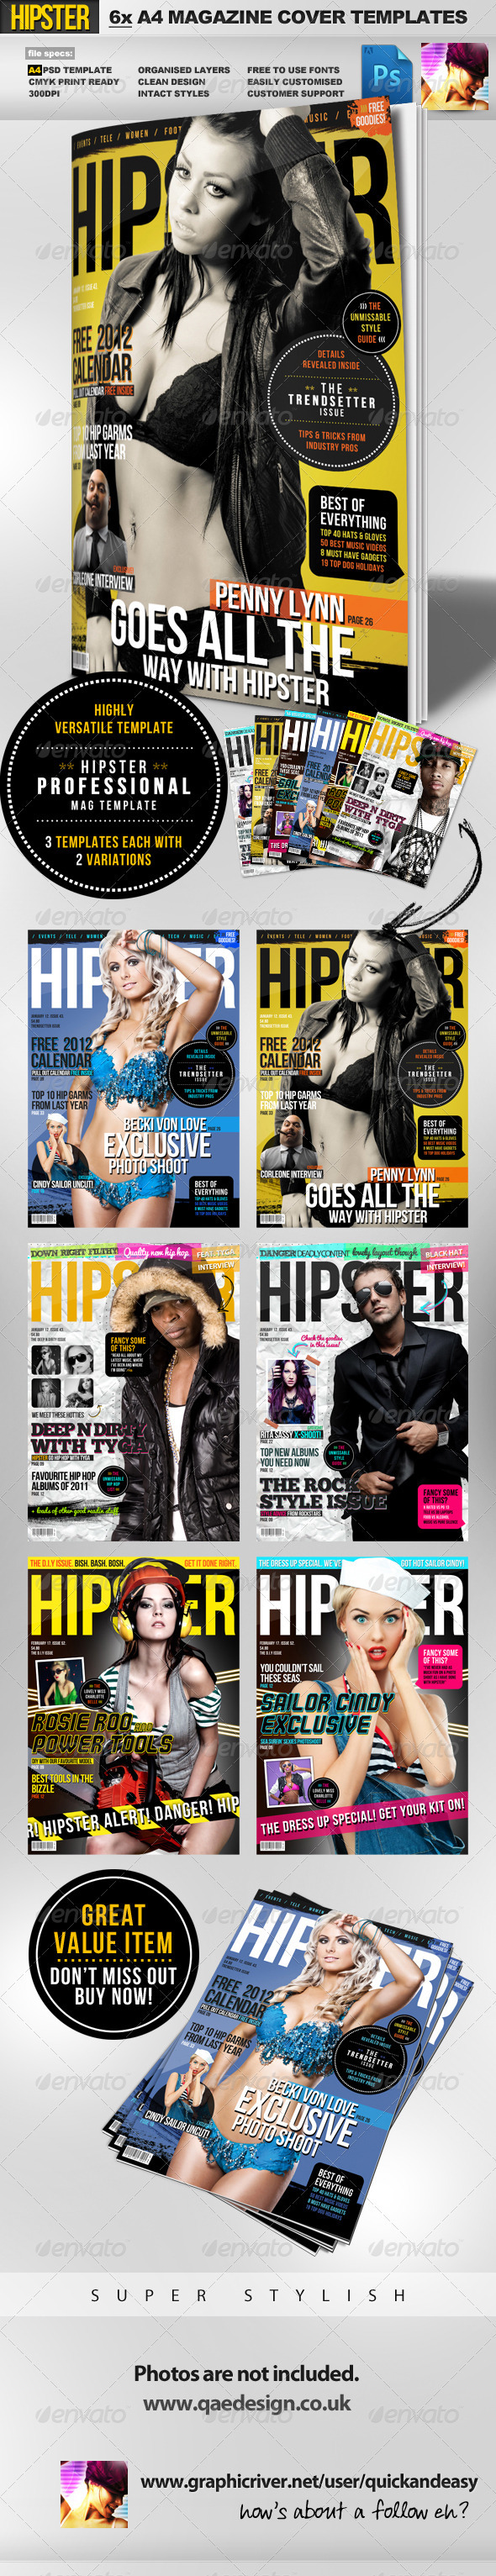 hipster a4 magazine cover templates